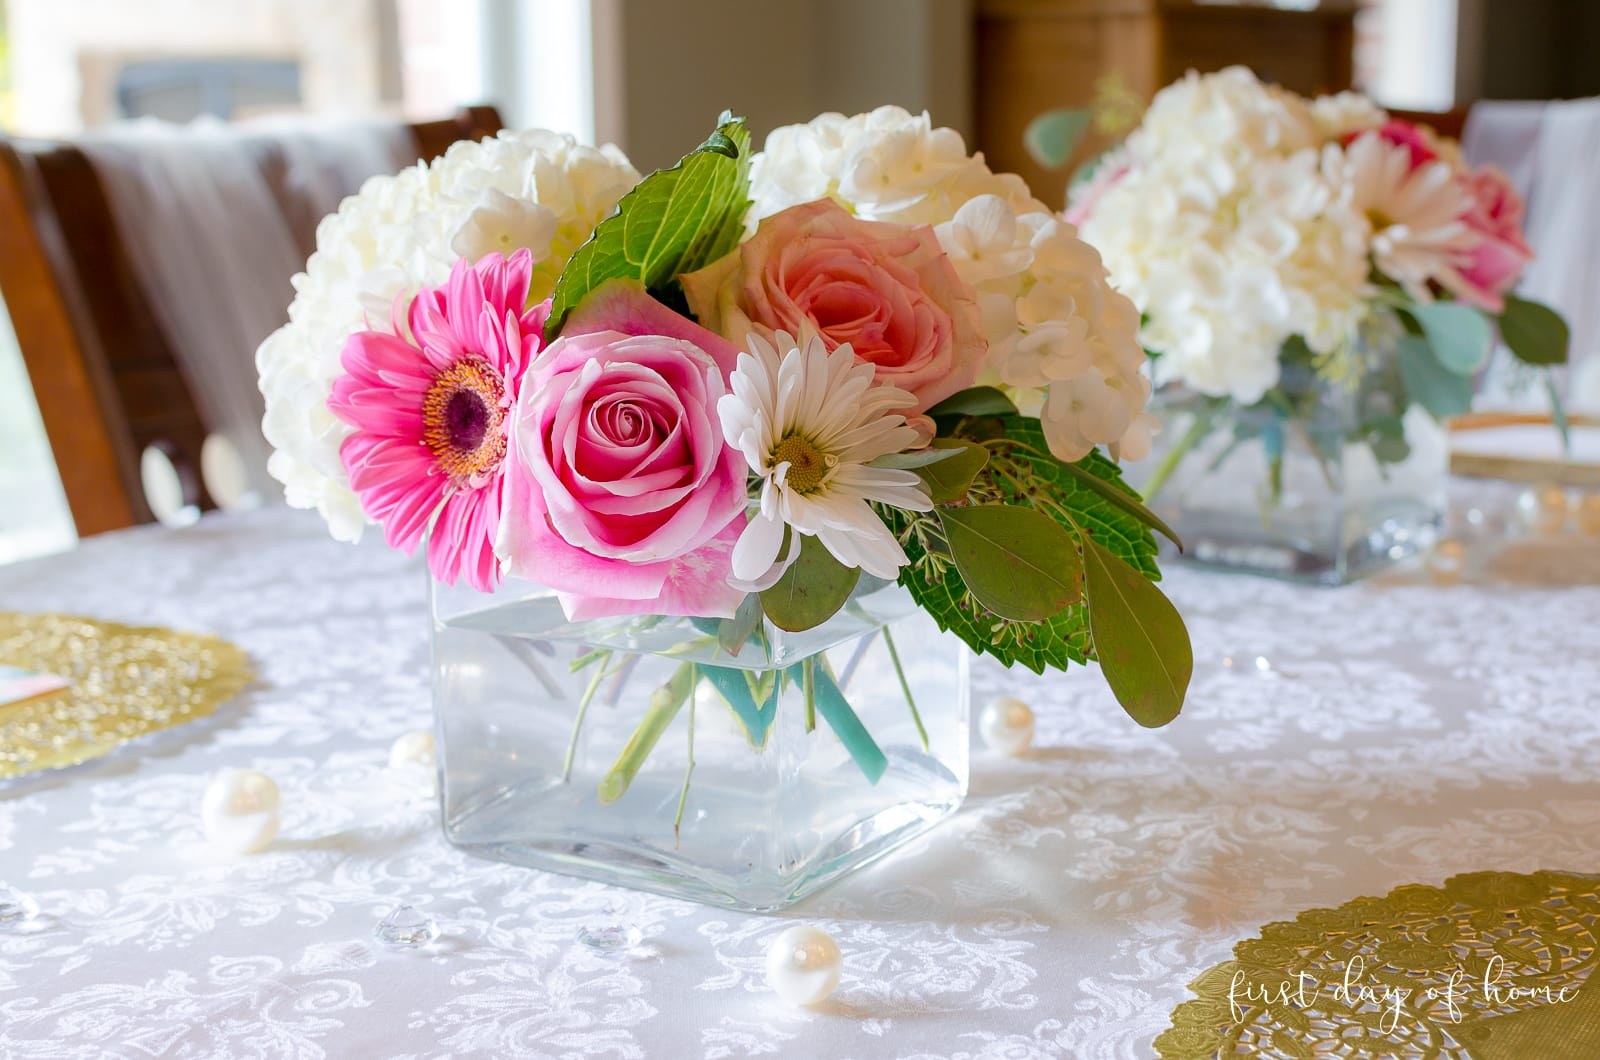 Bridal shower centerpiece floral arrangement in square vase with roses, daisies, hydrangeas and eucalyptus